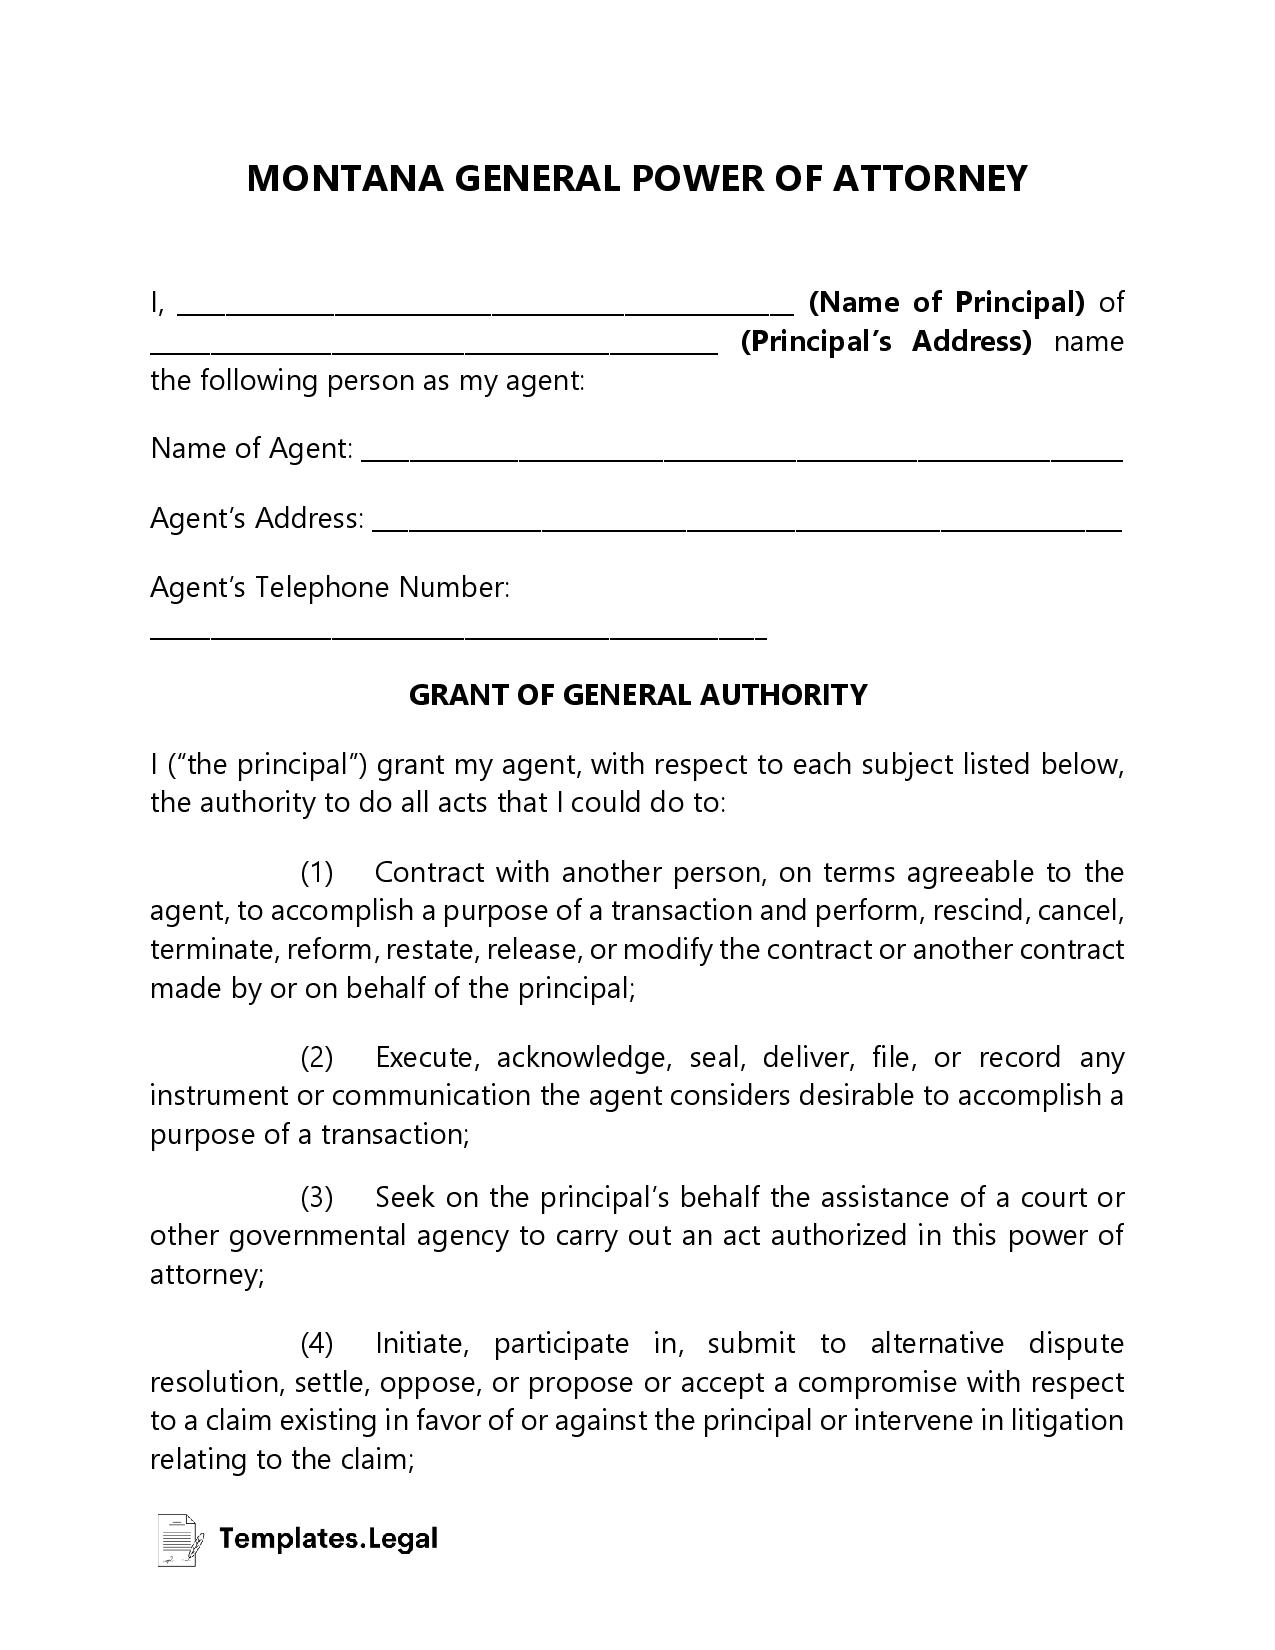 Montana General Power of Attorney - Templates.Legal